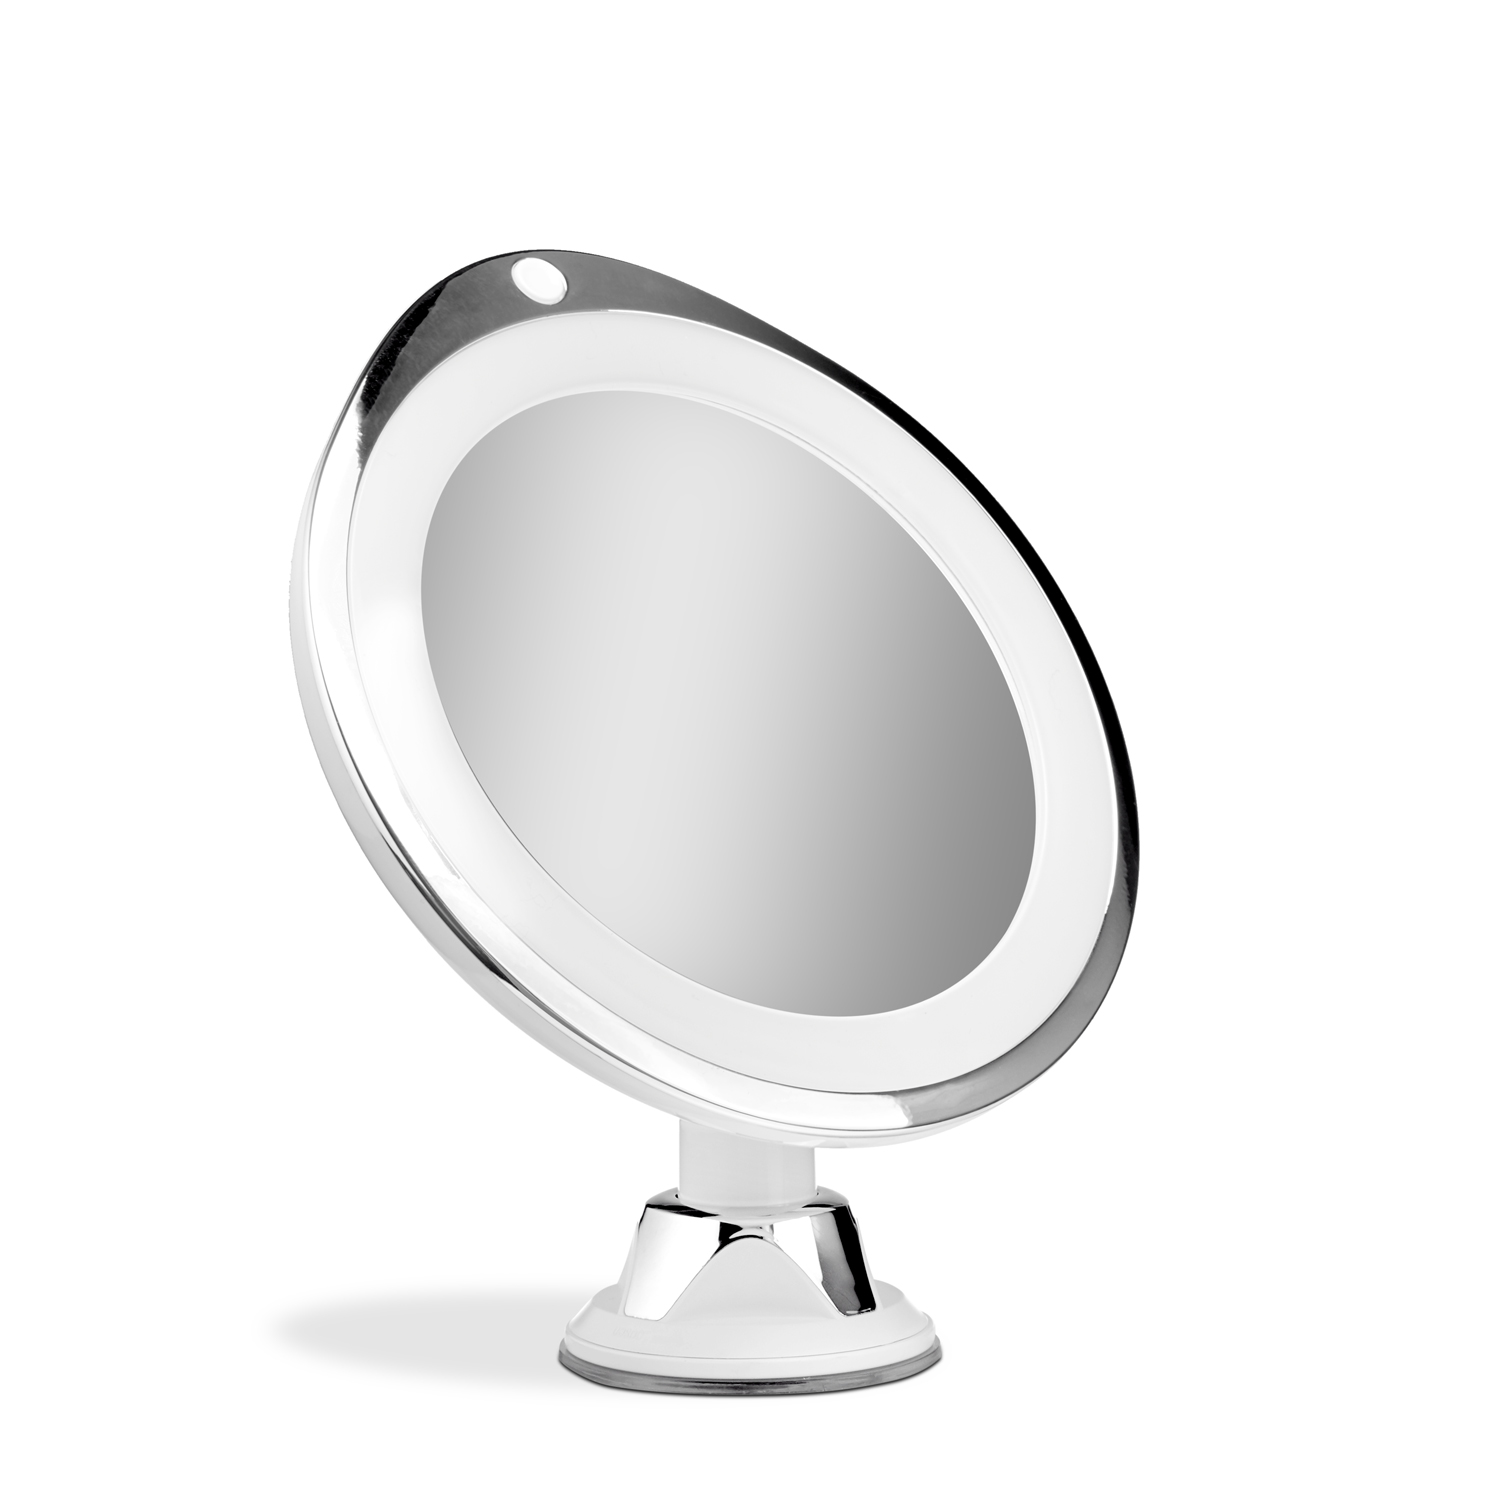 Gillian Jones - Chrome Suction Mirror x 7 w. LED Light